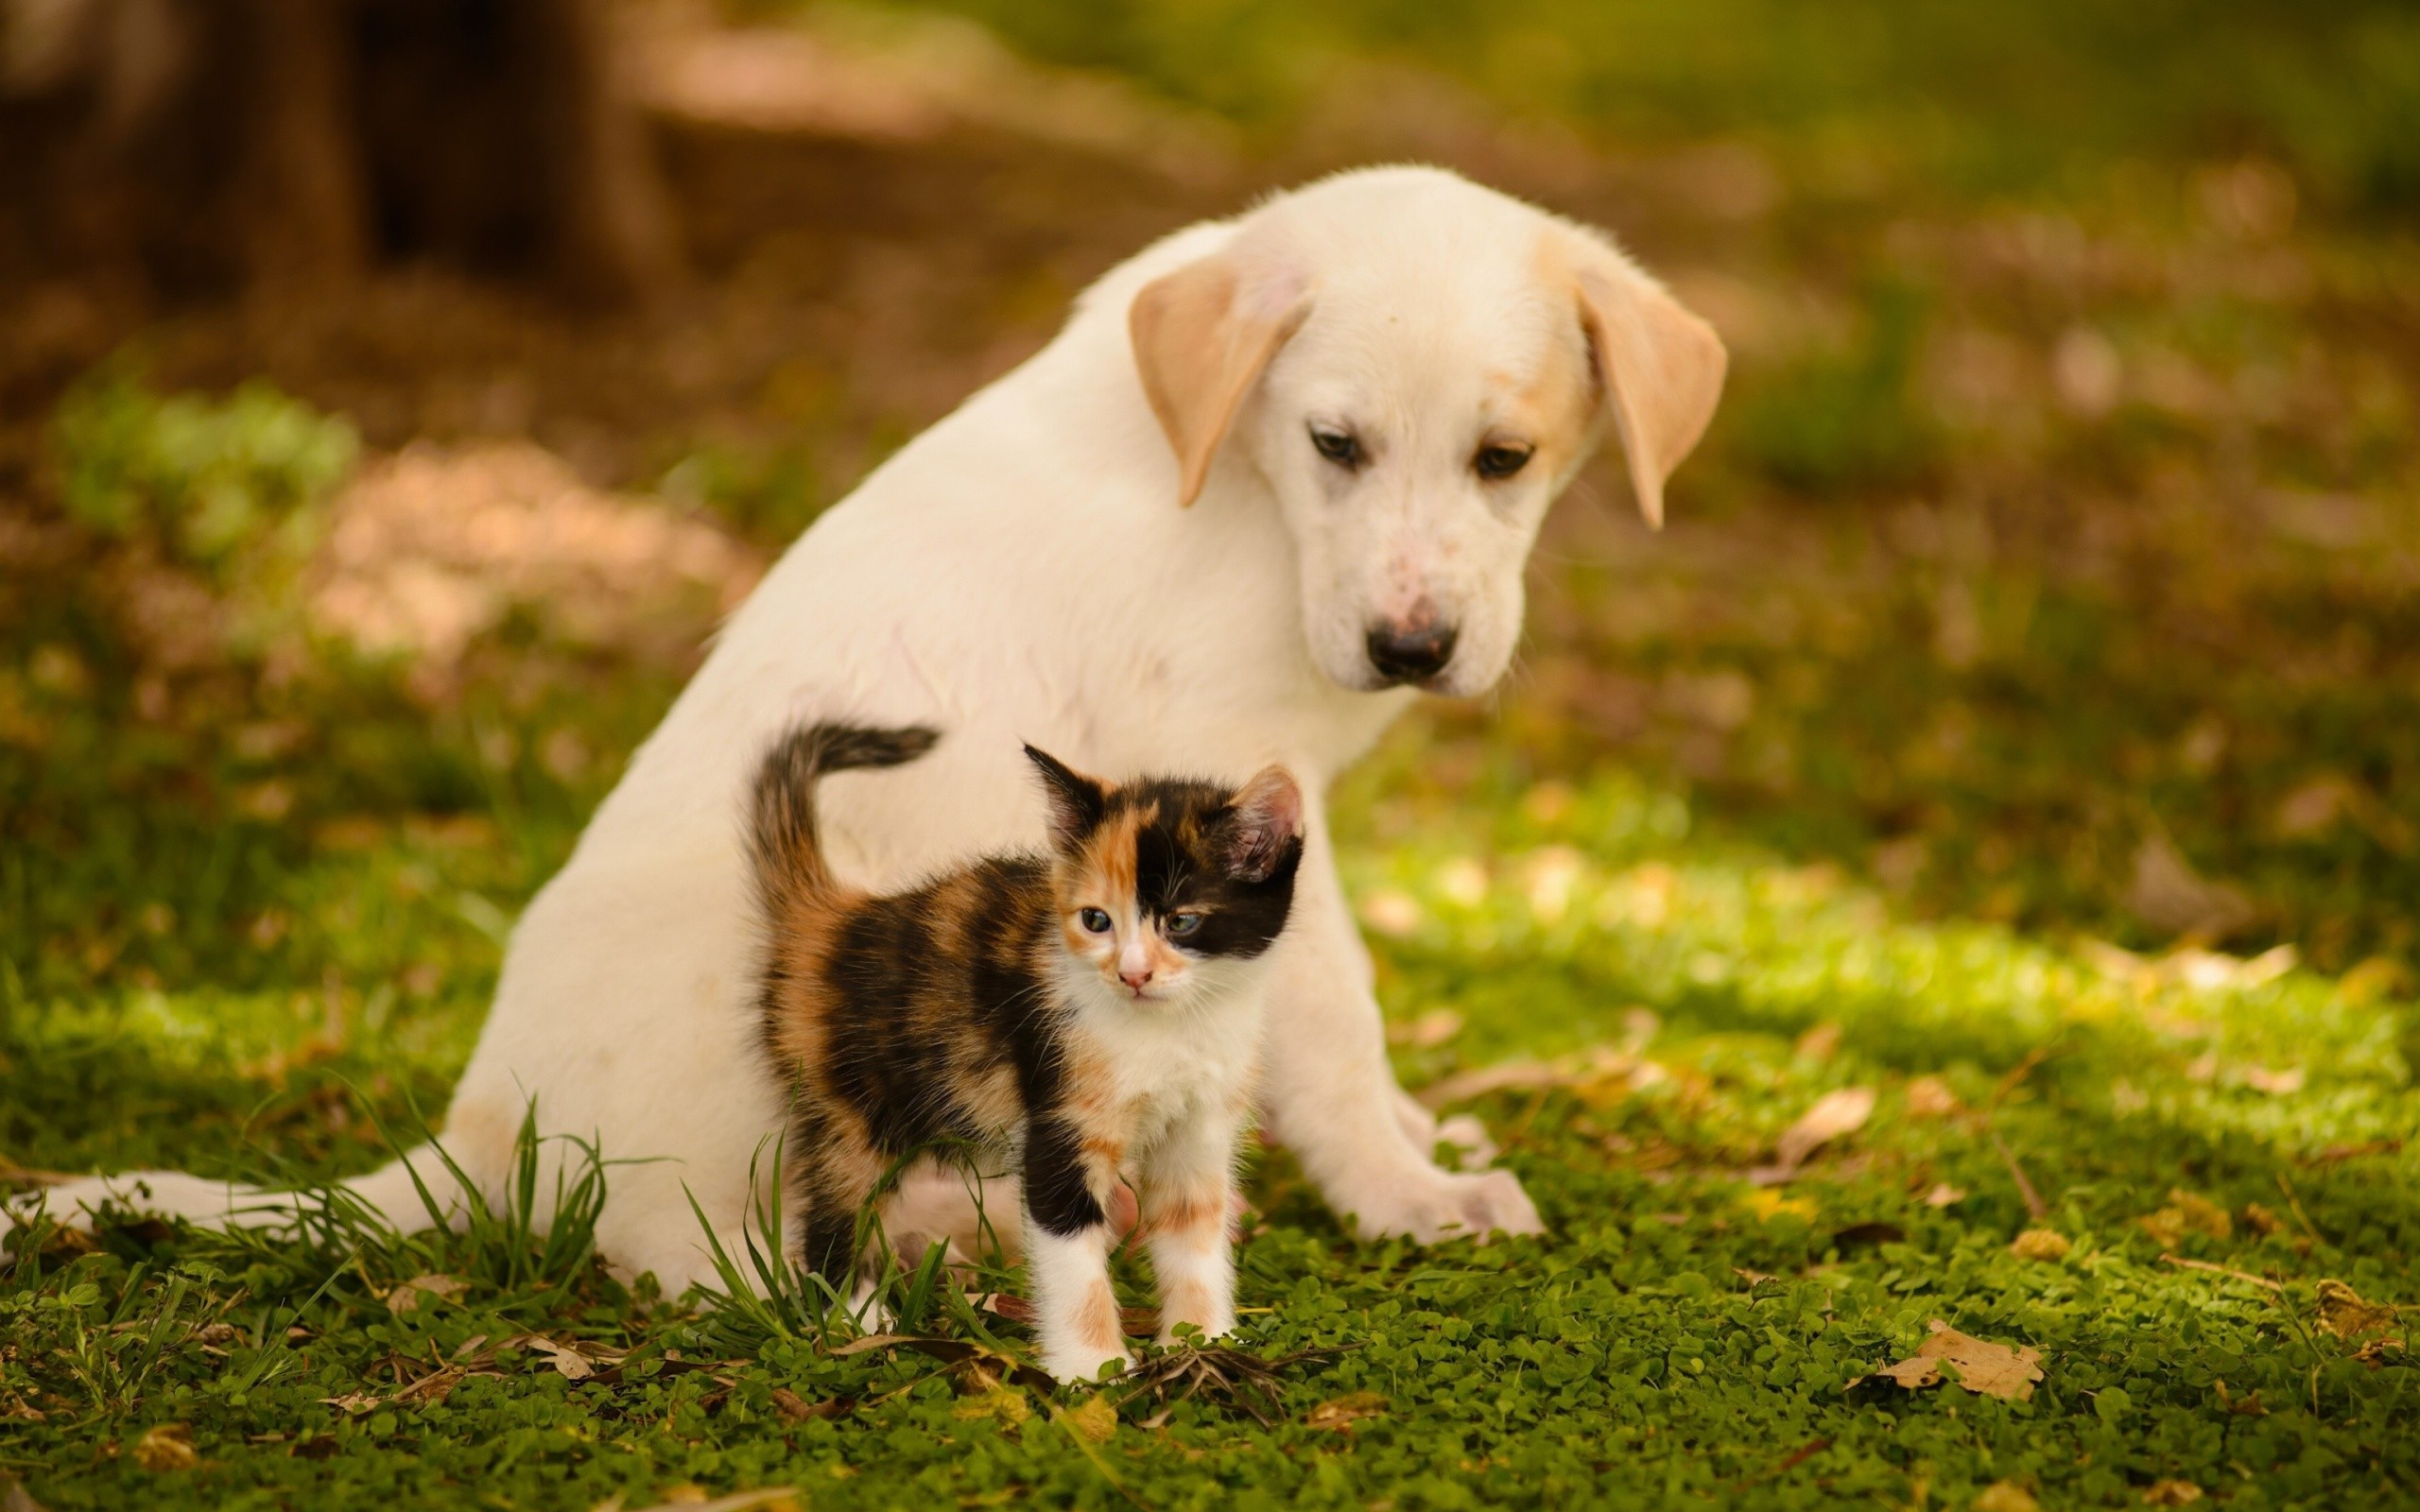 Cute Puppies And Kittens Wallpaper: Cute Puppy And Kitten Wallpapers (58+ Images